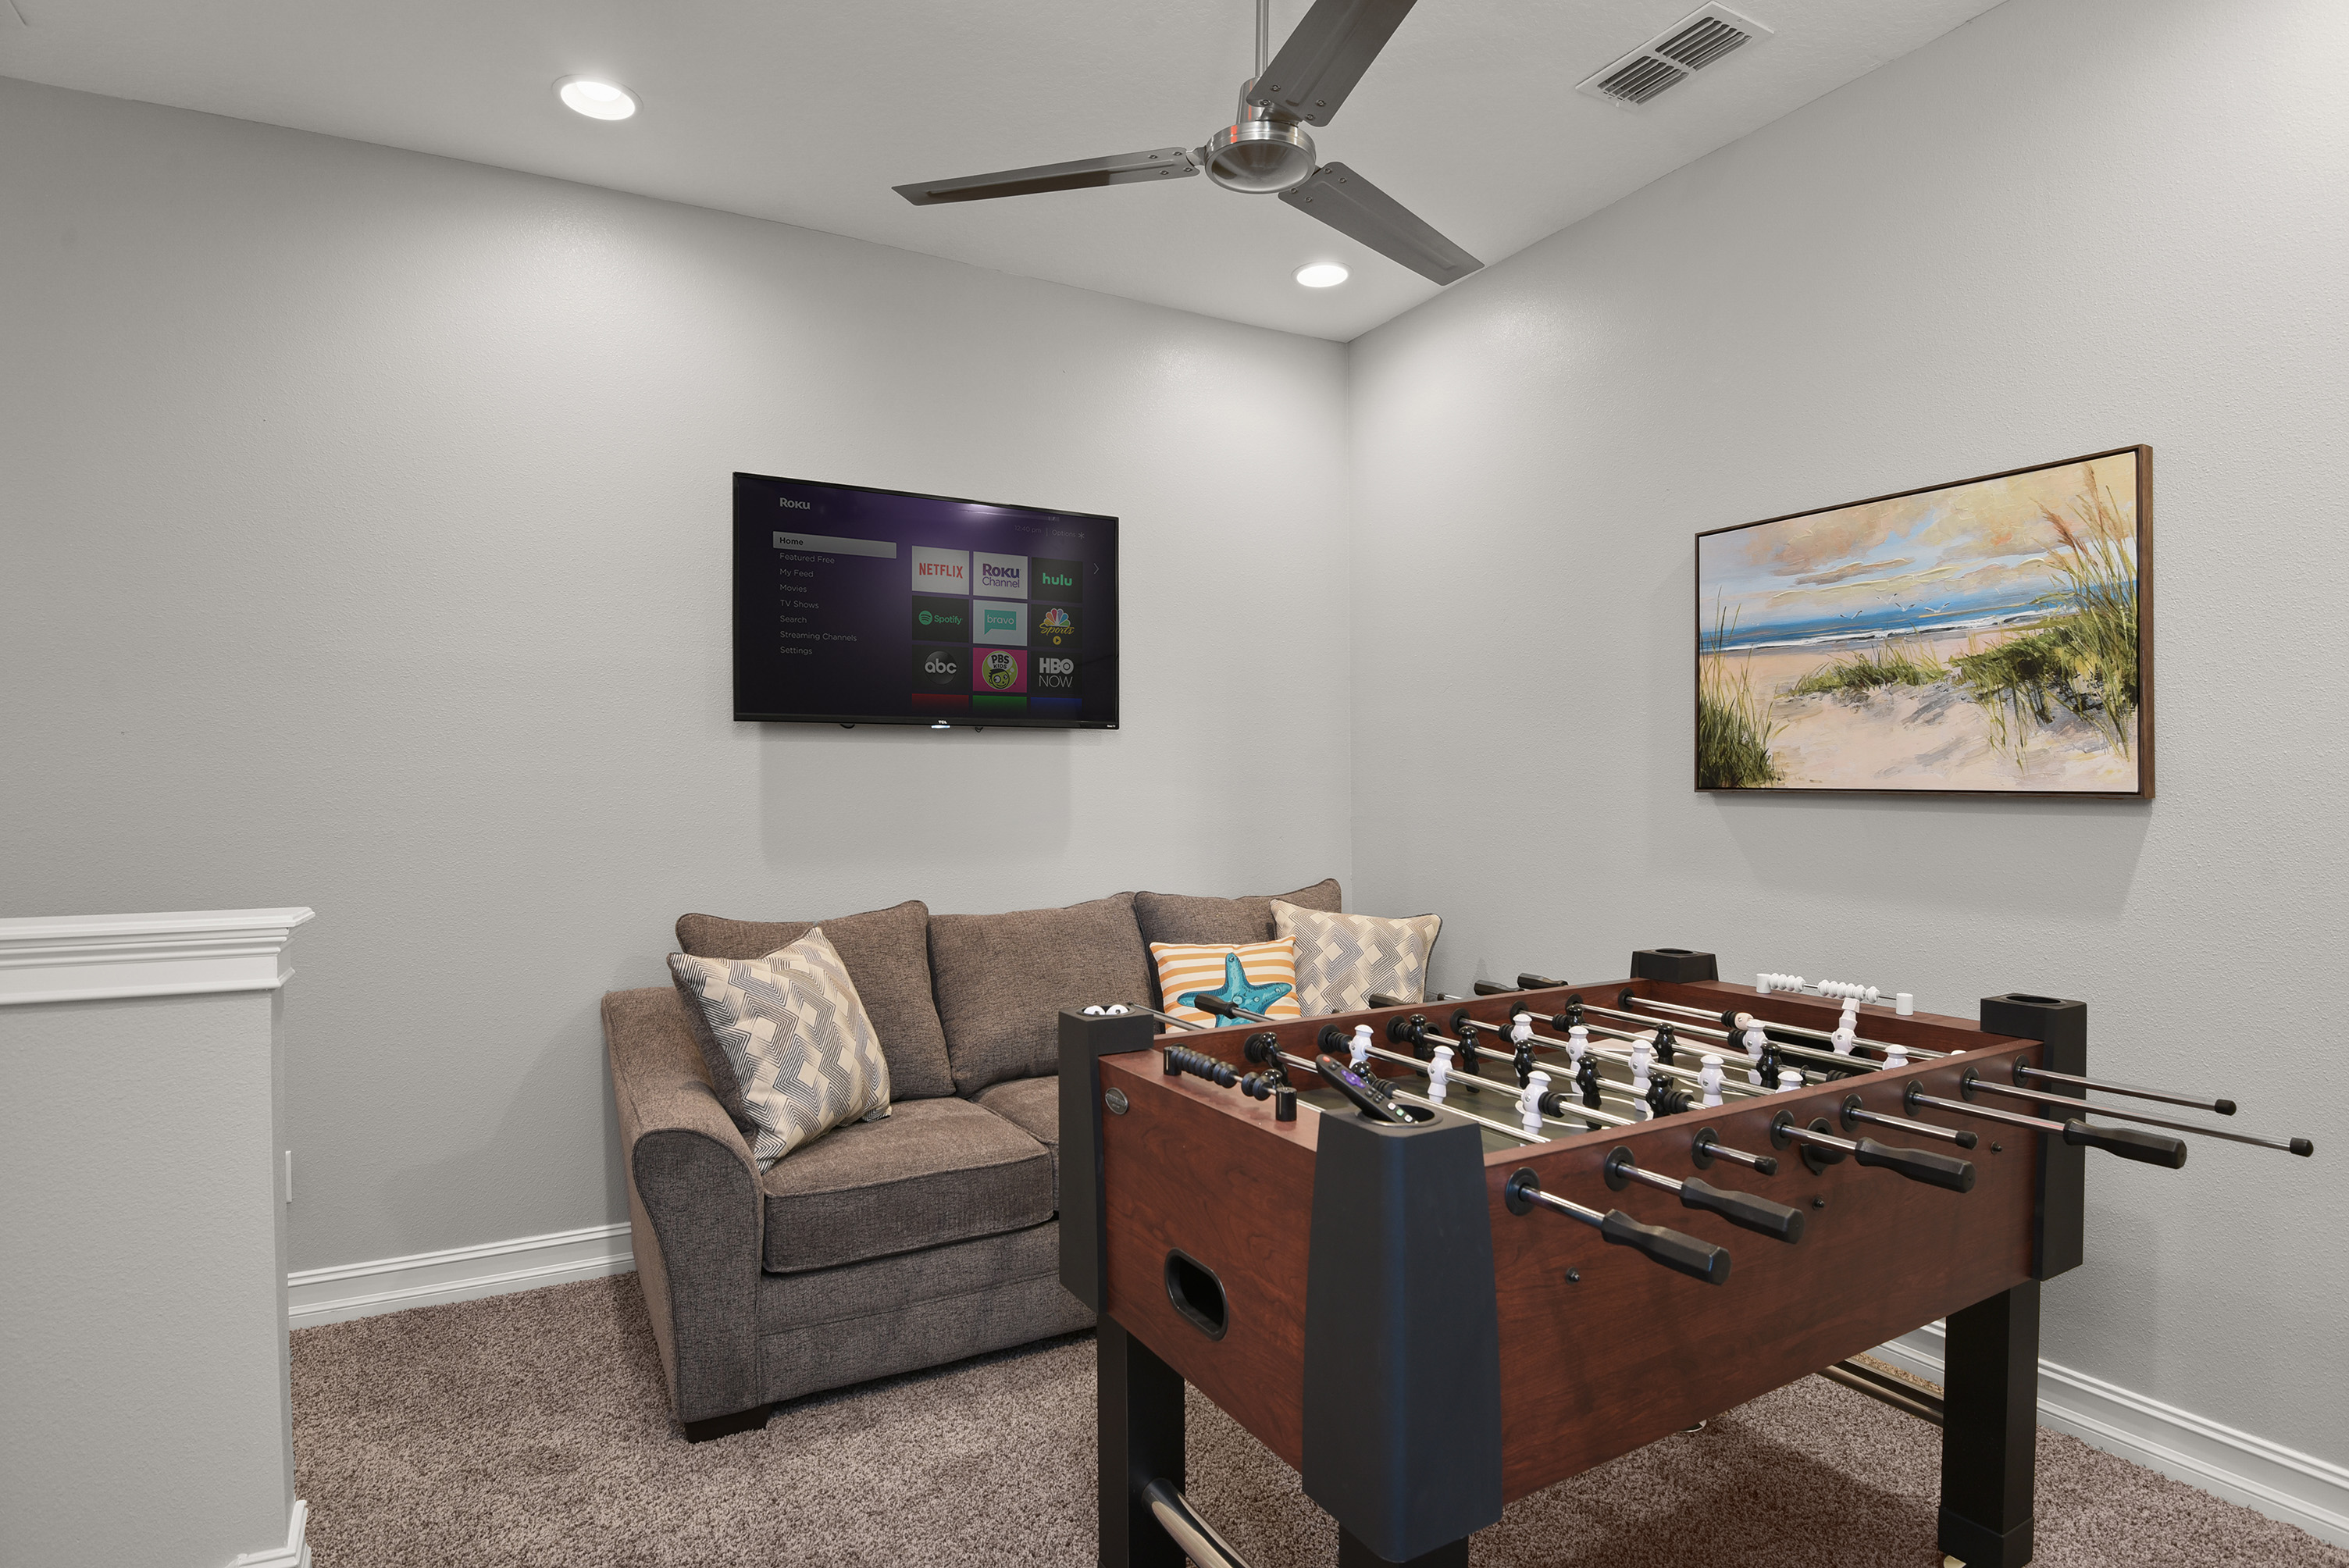 Foosball table in property